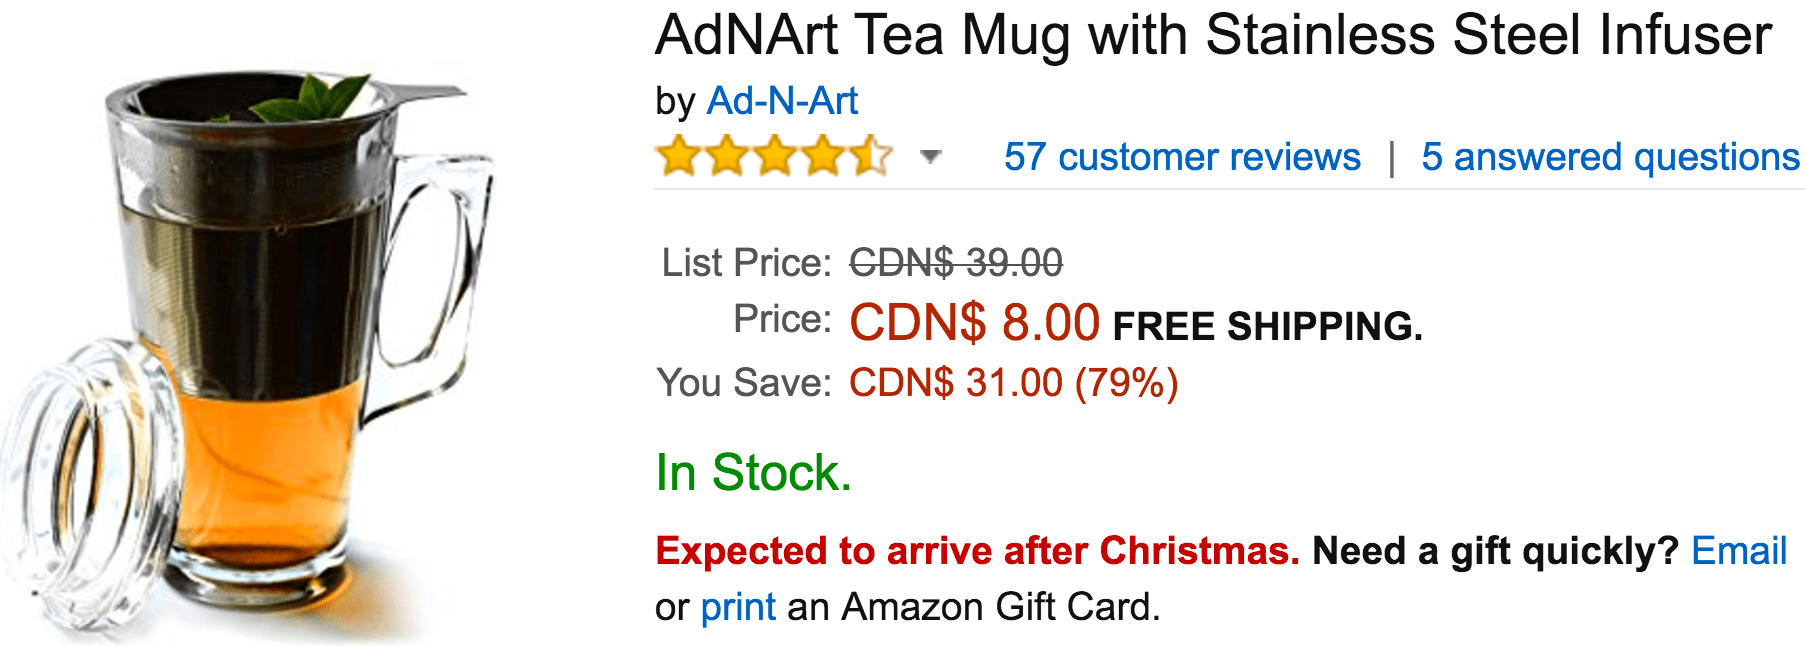 Amazon Canada Deals Of The Day: Save 79% Off AdNArt Tea Mug with Stainless Steel Infuser, Extra 30% Off at Checkout on Select Clothing, Shoes and Accessories & More Deals